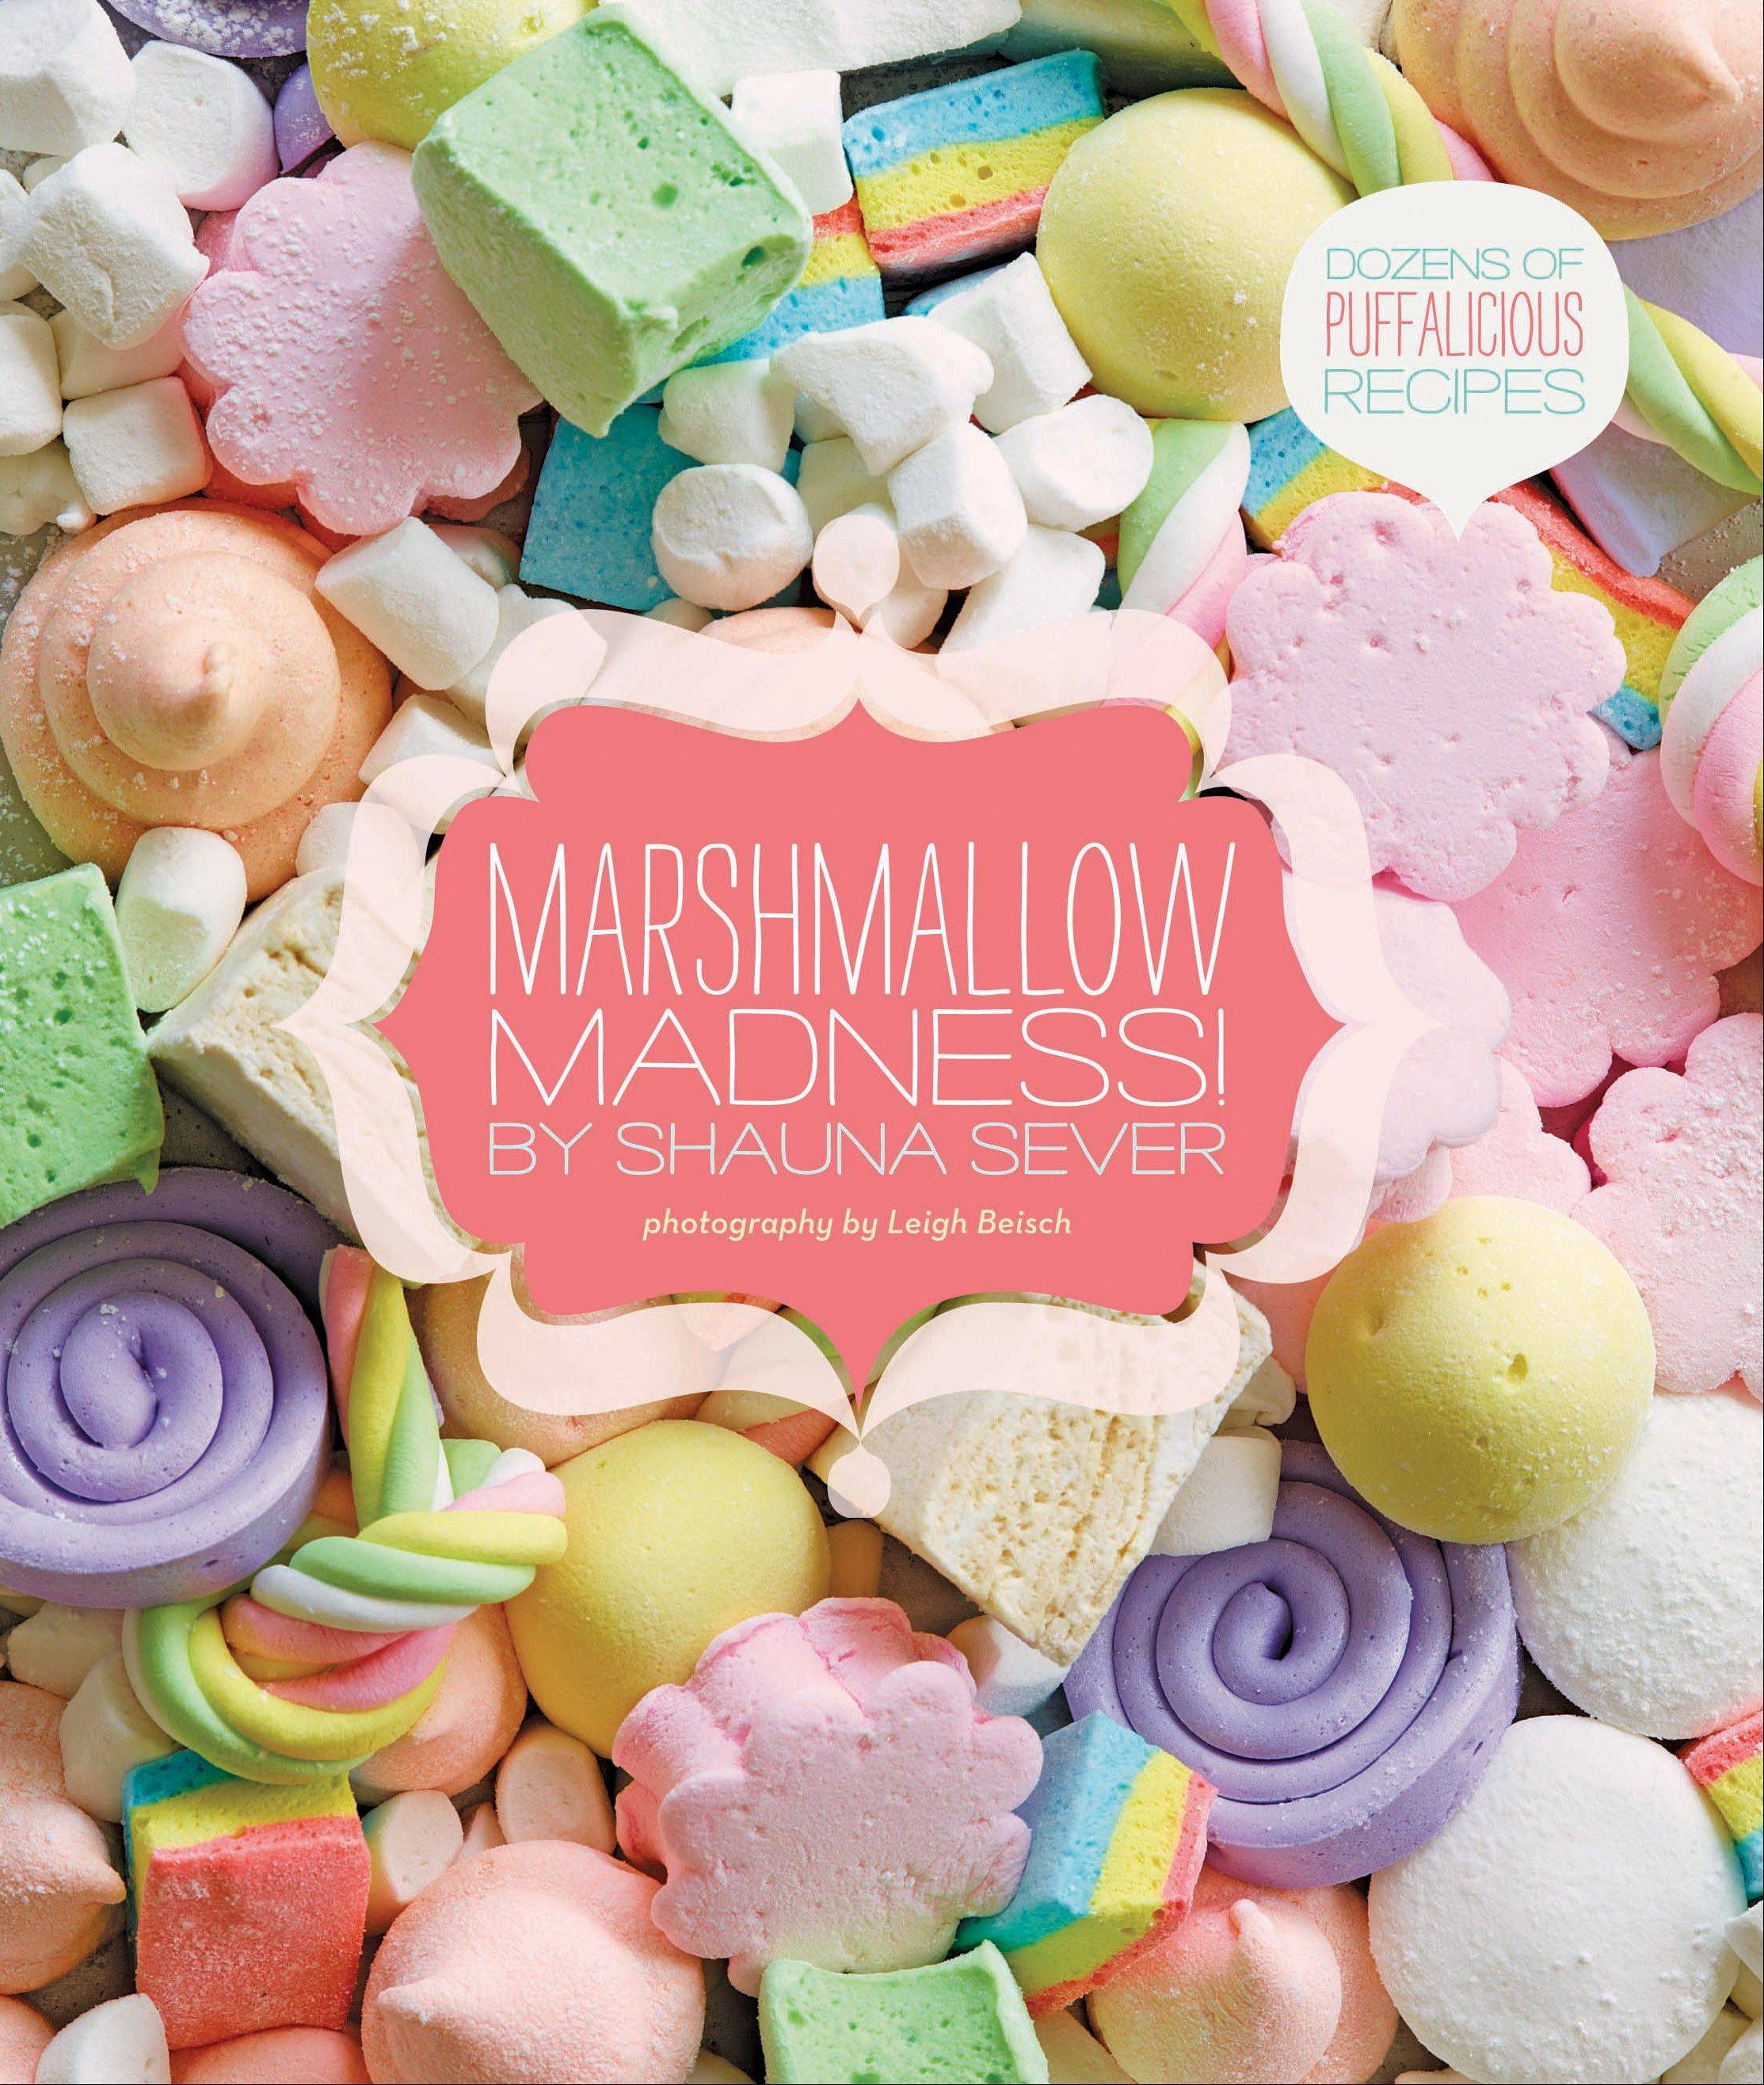 """Marshmallow Madness"" by Shauna Sever"